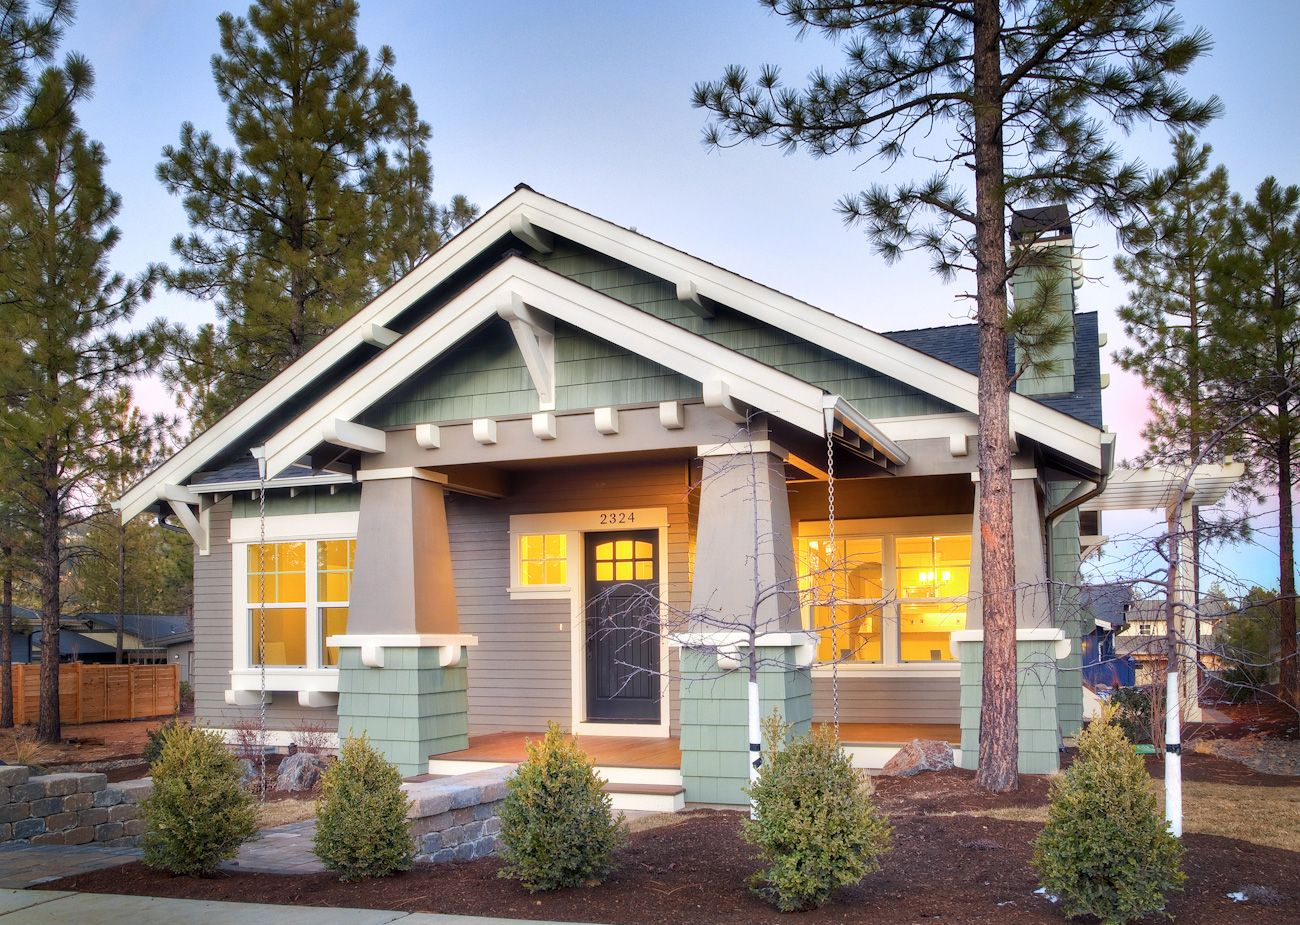 cottage style craftsman typically a one story building with a compact rectangular plan - Small Cottage House Plans 2